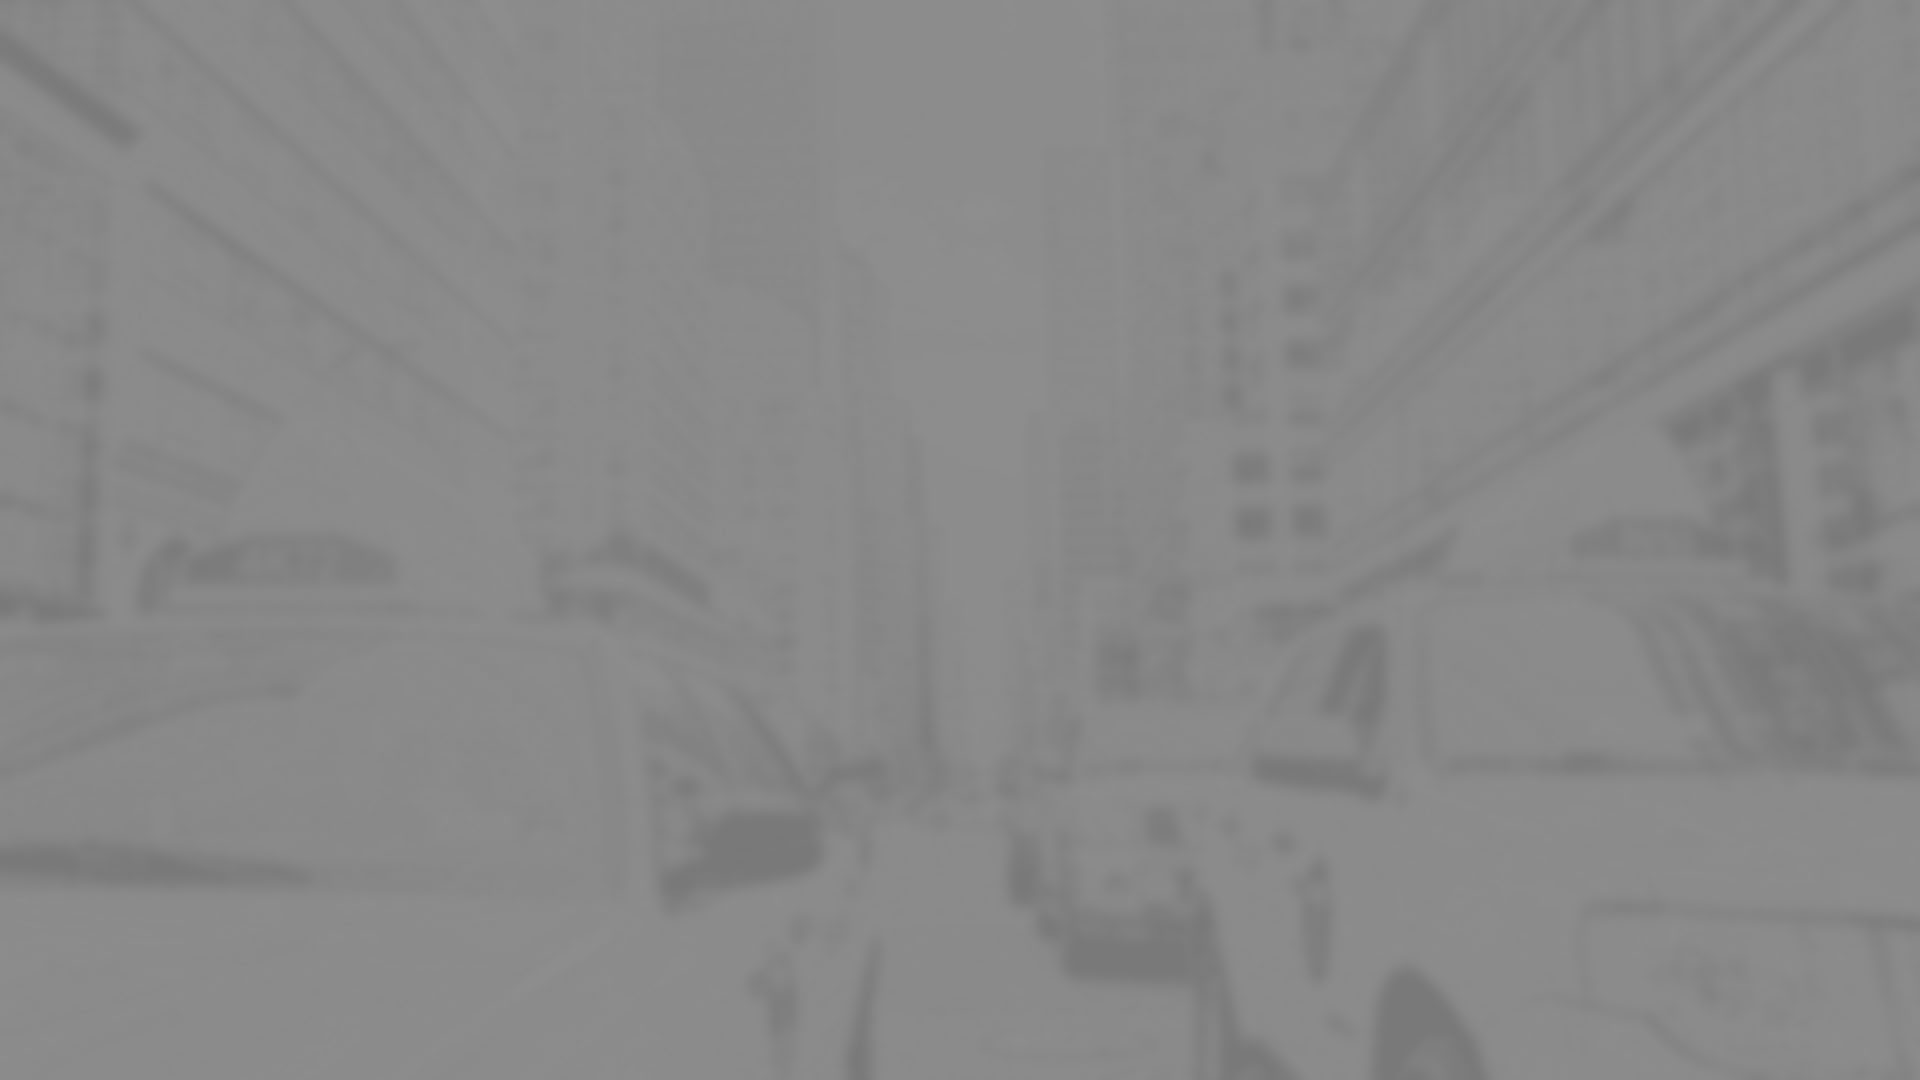 Intertaxis